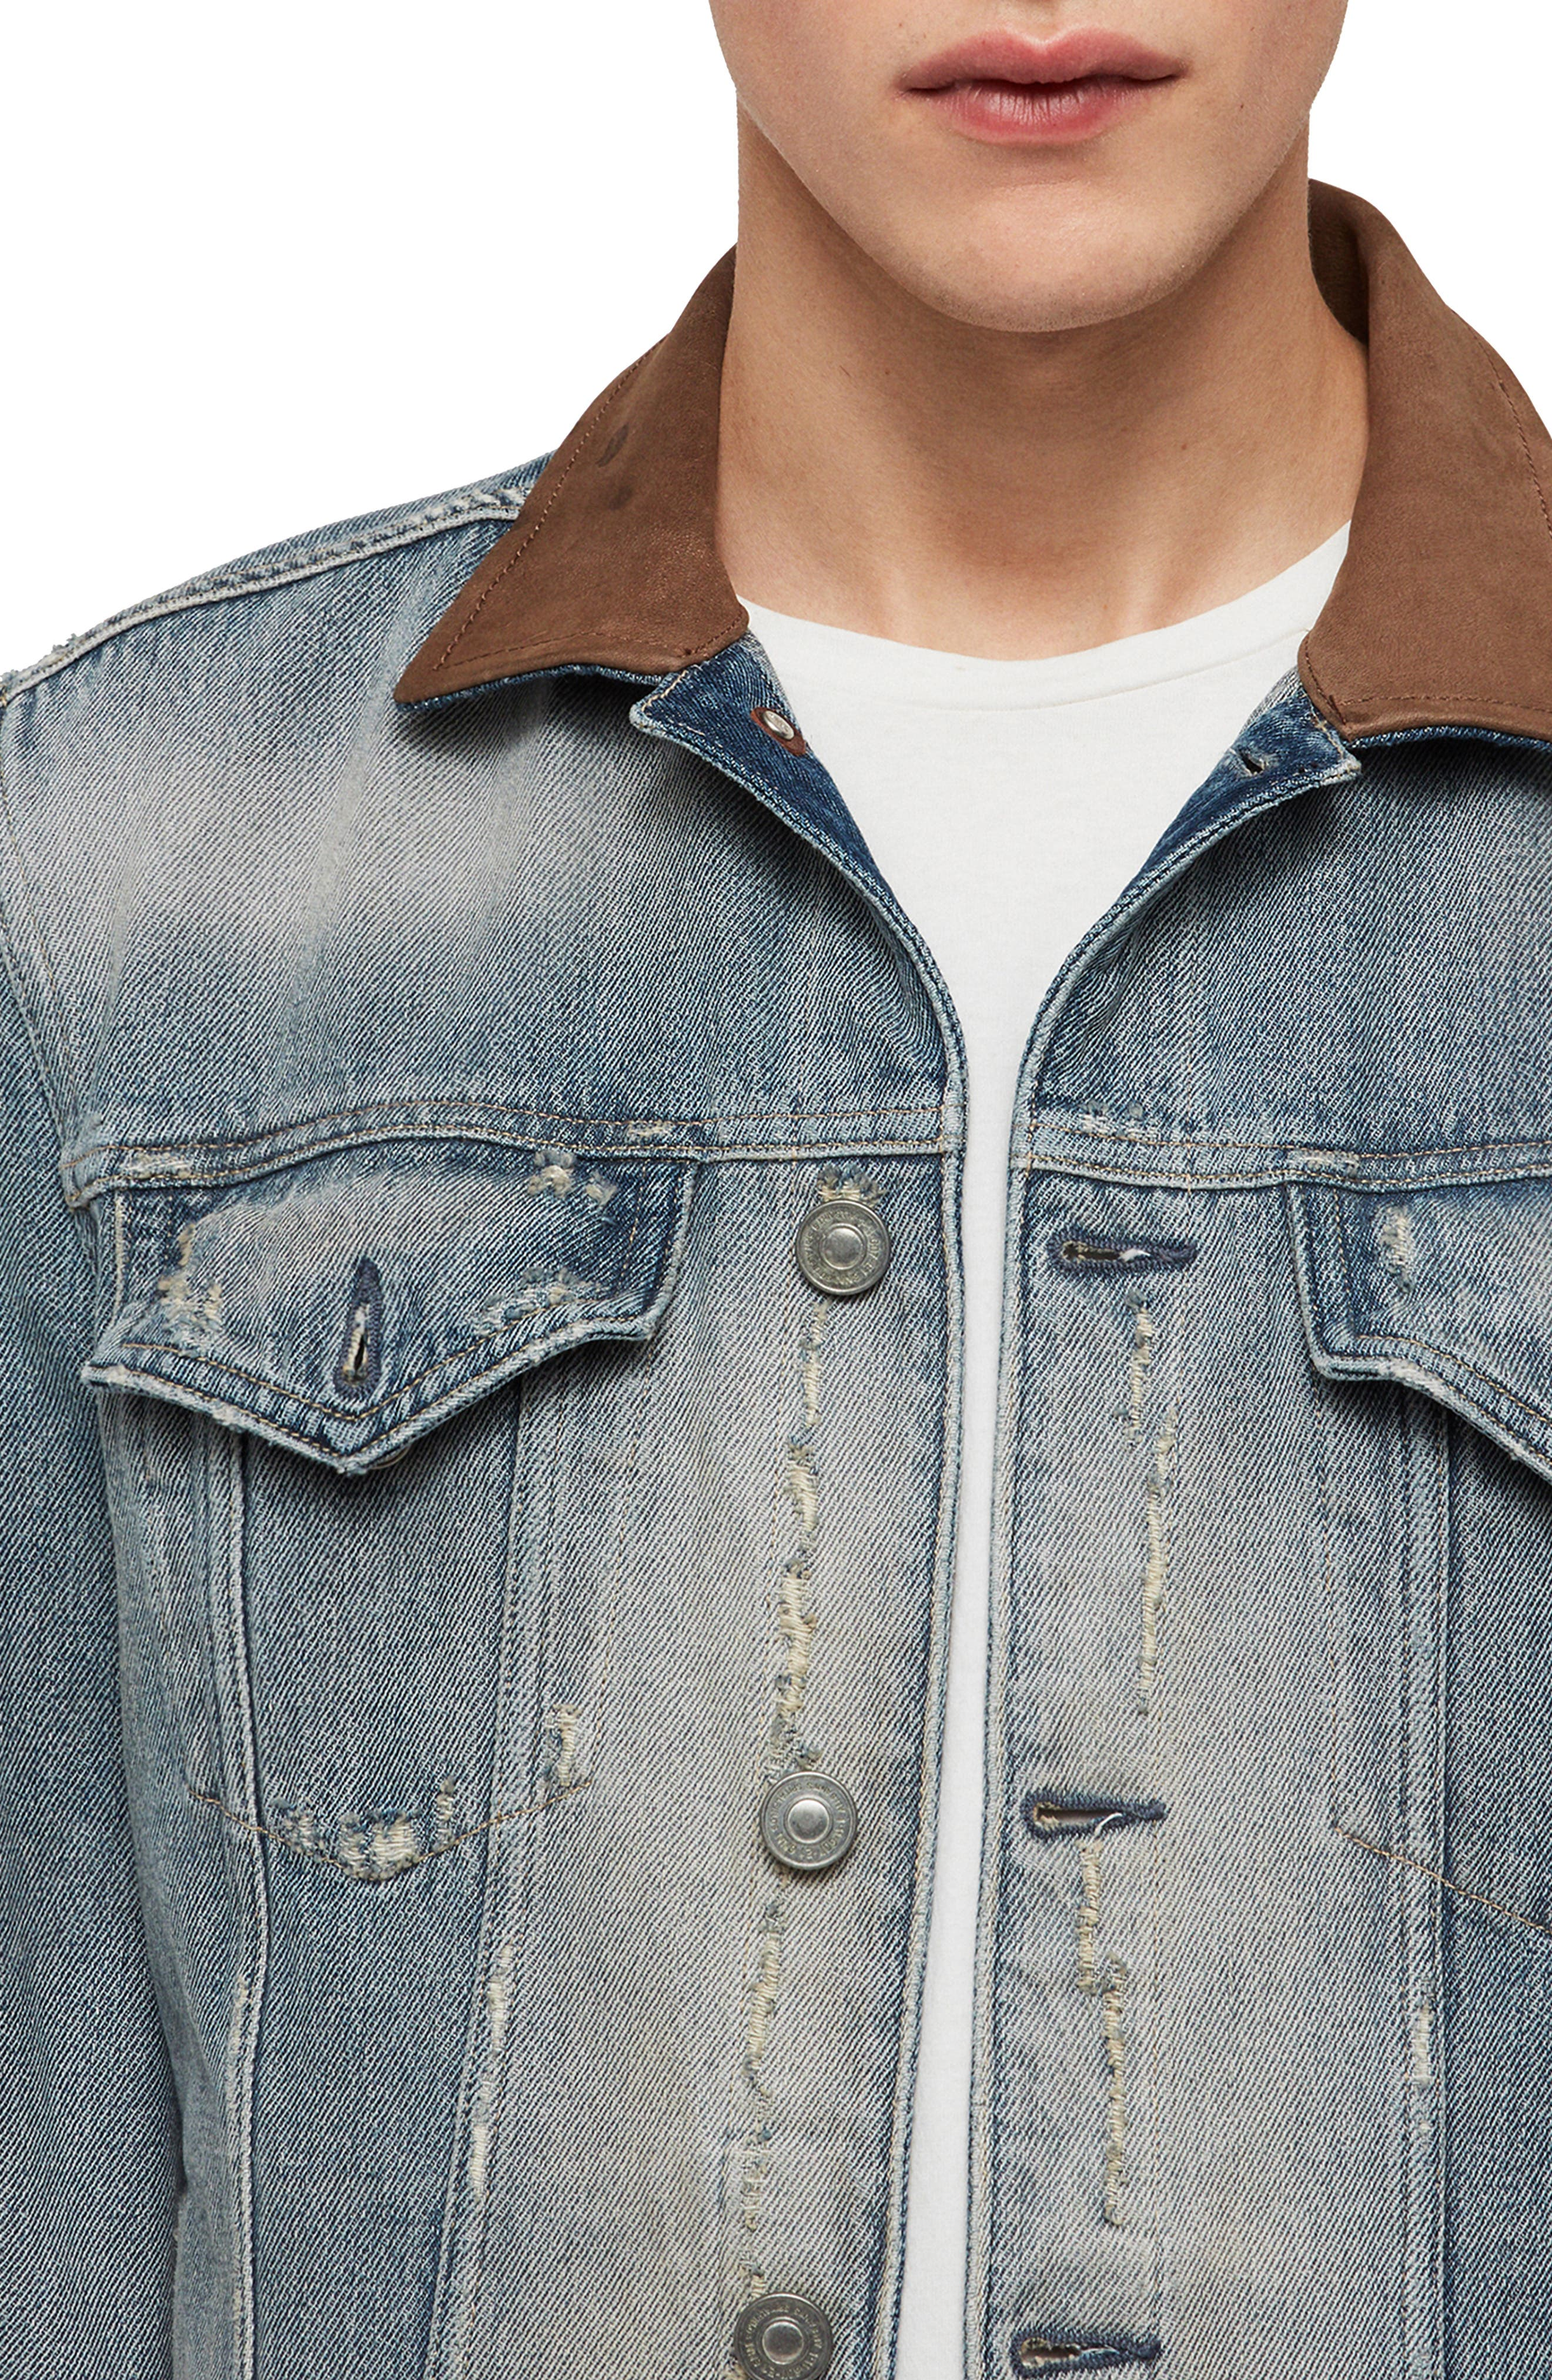 ALLSAINTS, Iren Slim Fit Denim Jacket with Leather Collar, Alternate thumbnail 4, color, MID INDIGO BLUE